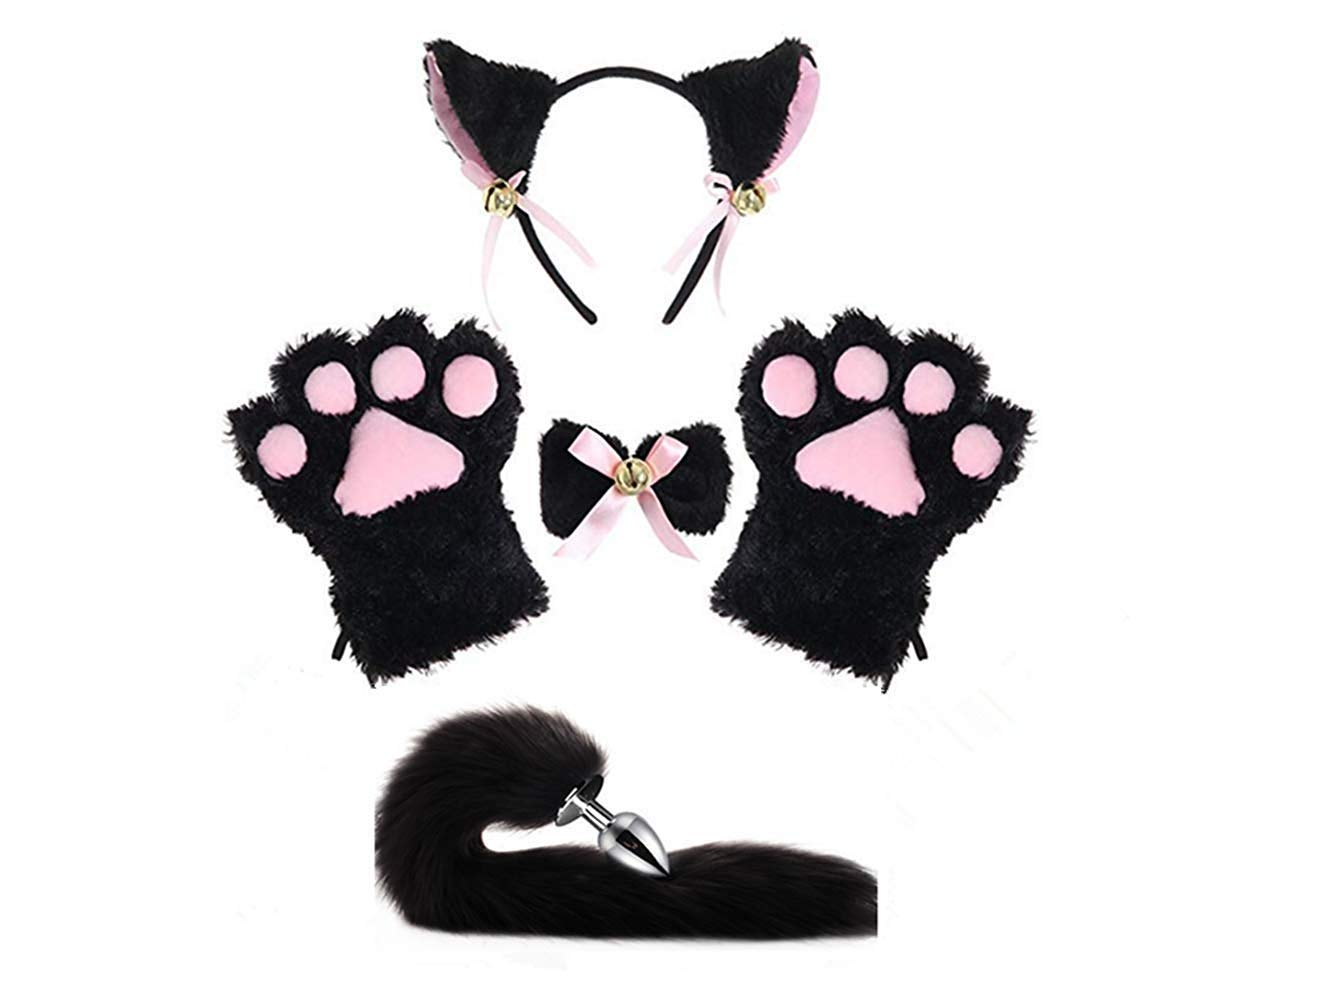 MIAOWU staydream Cat Cosplay Costume Kitten Tail Ears Collar Paws Gloves Anime Gothic Set